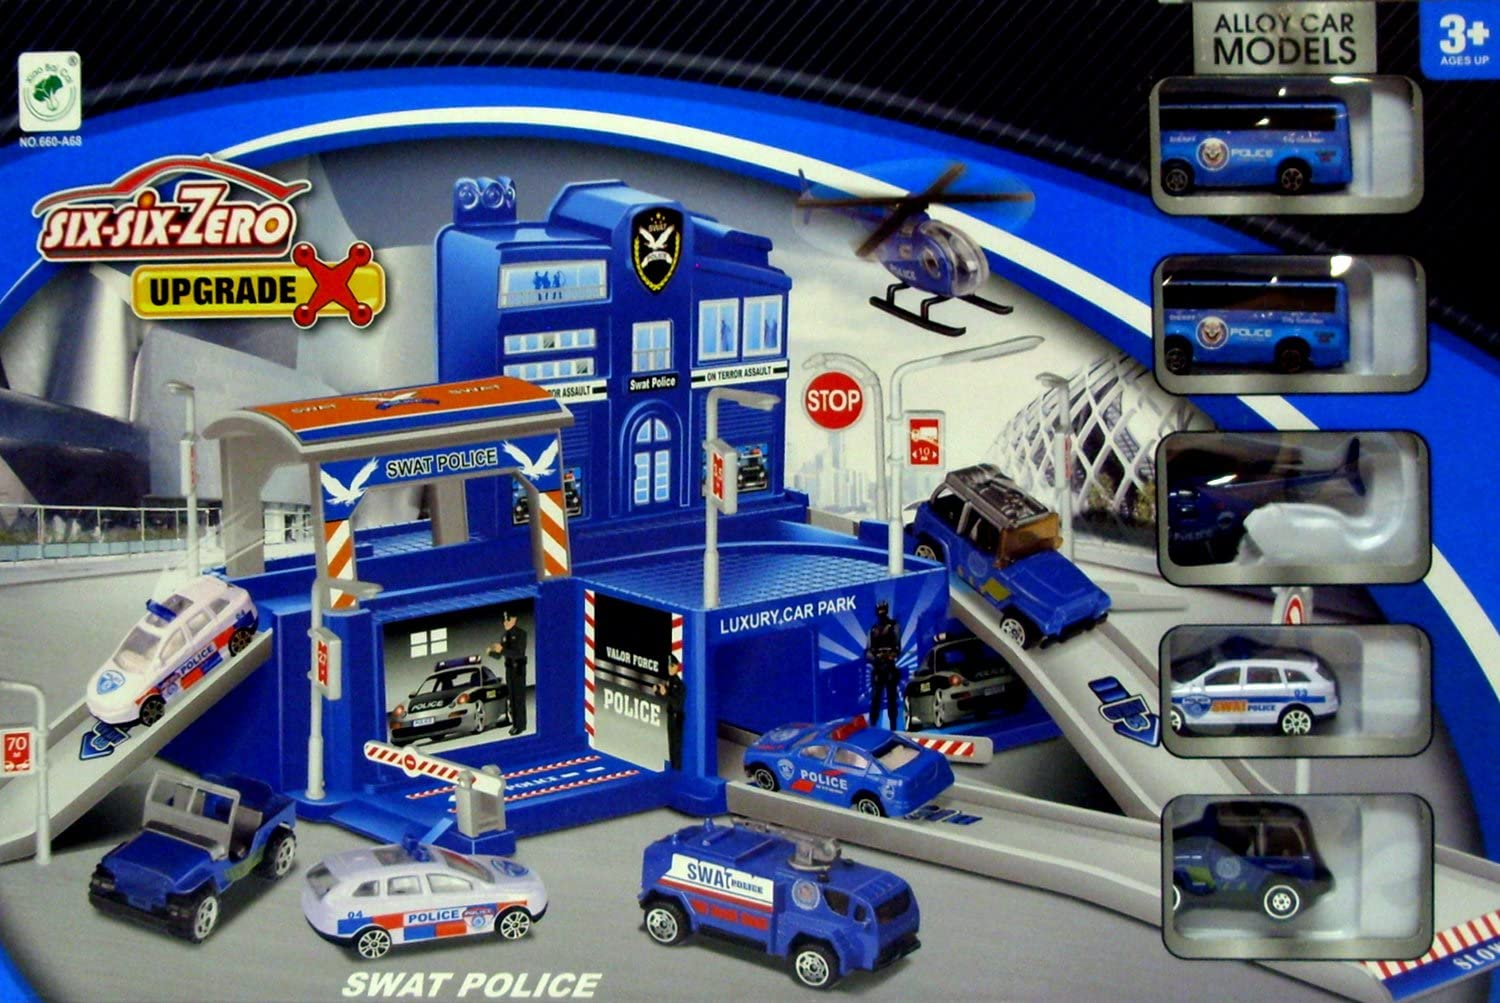 SWAT Police Play Set~Construct a Police Station complete with Garage Ramps /& Living Quarters ~ Includes 5 Police Vehicles~Great Imaginative Toy!